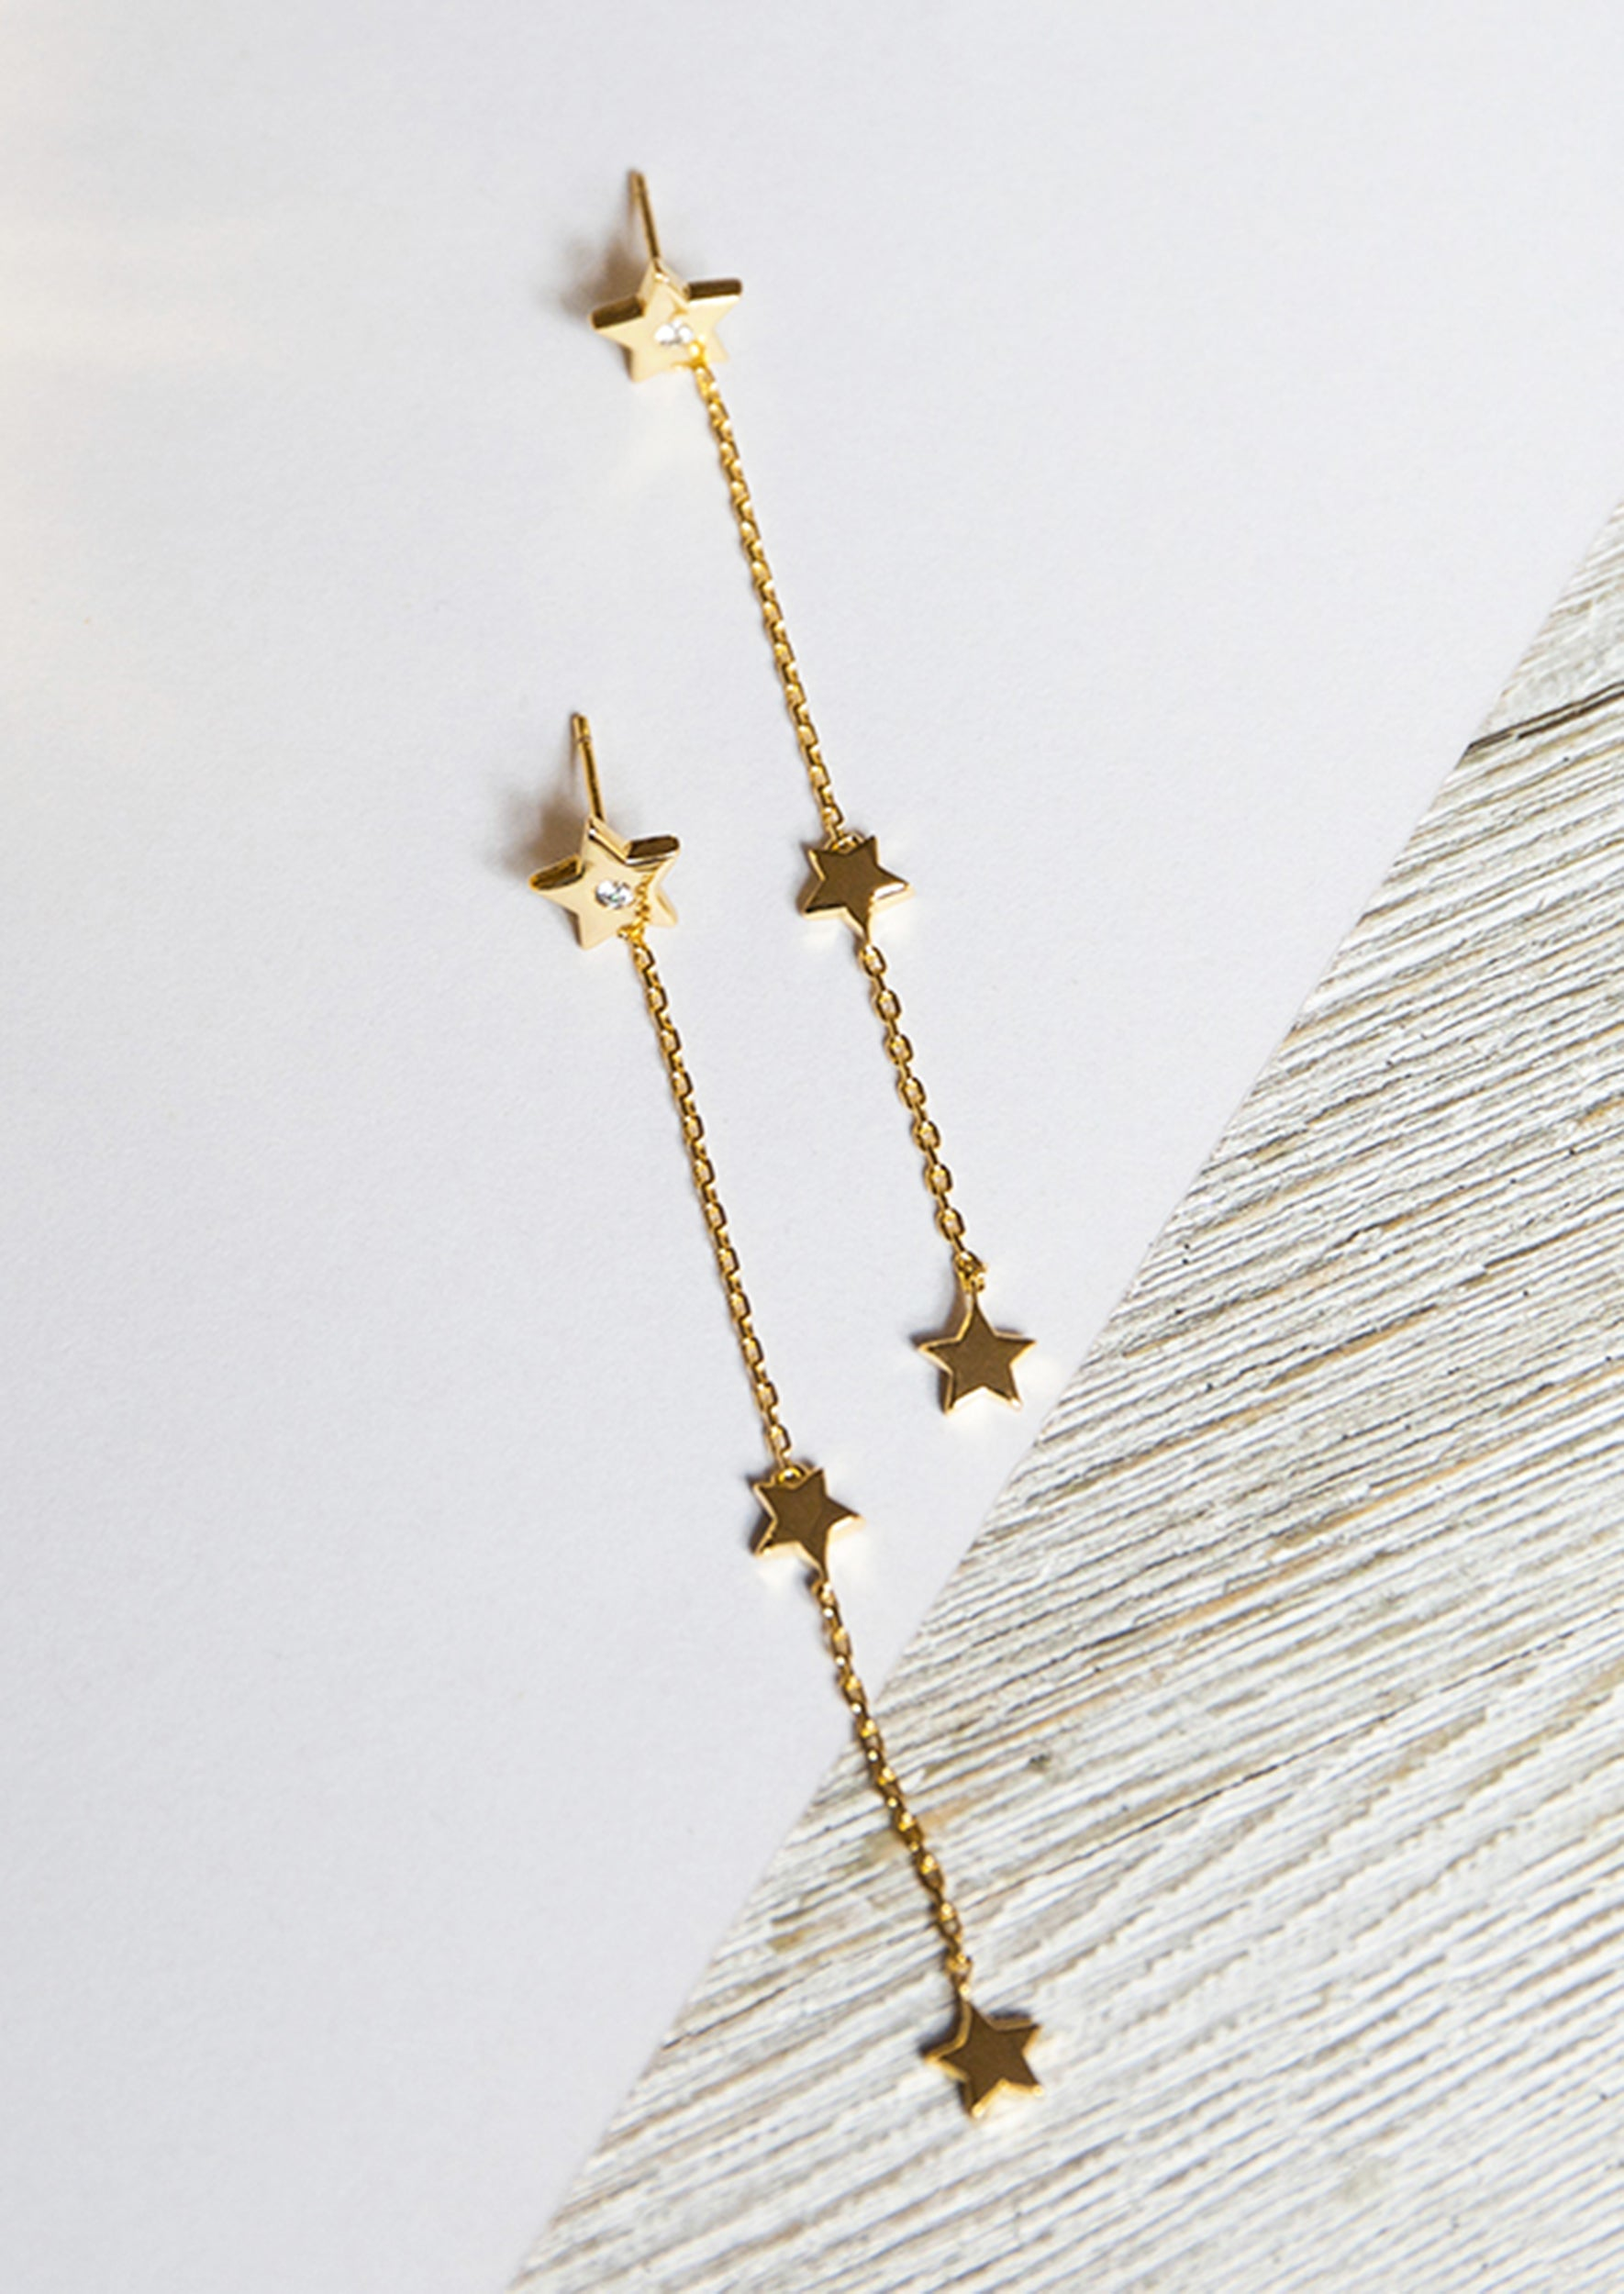 STAR DROP EARRINGS - Jules Smith - 14K Gold Plated - Boho Jewelry